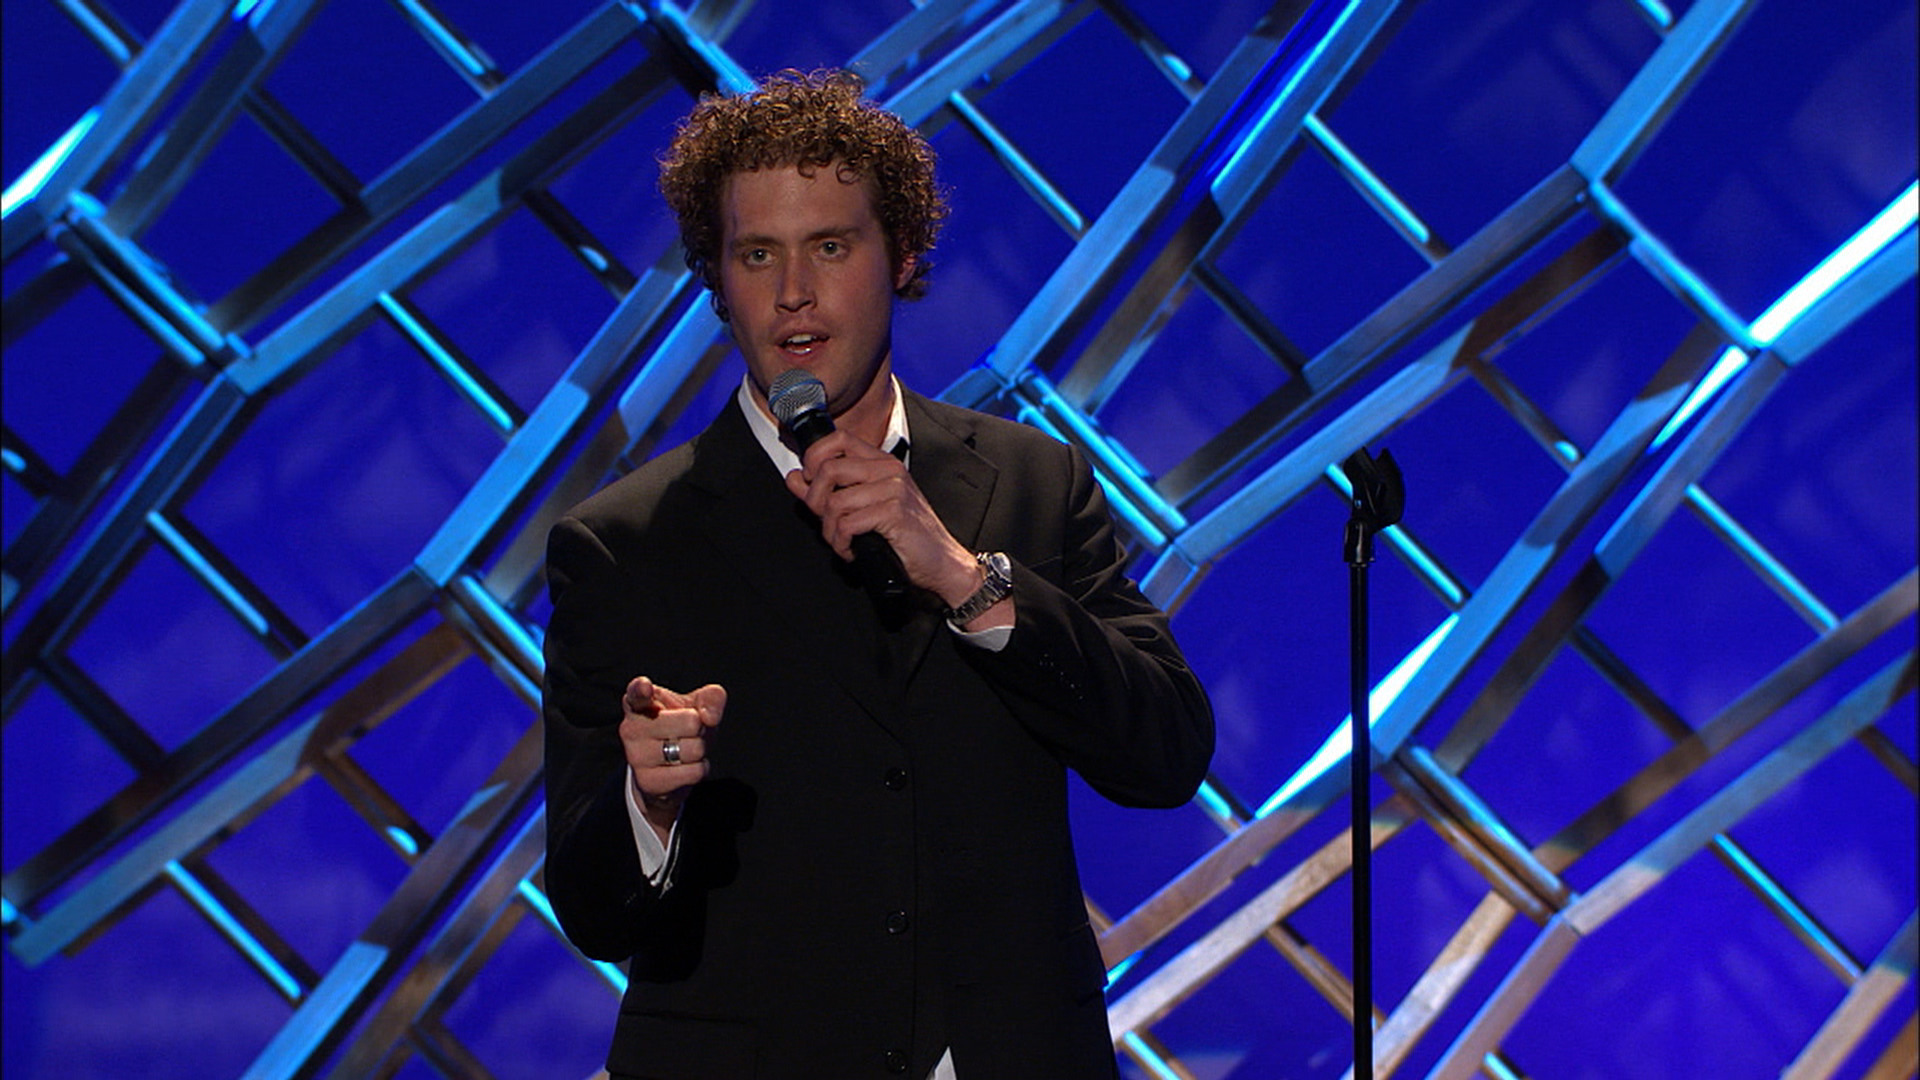 T.J. Miller - The Rider